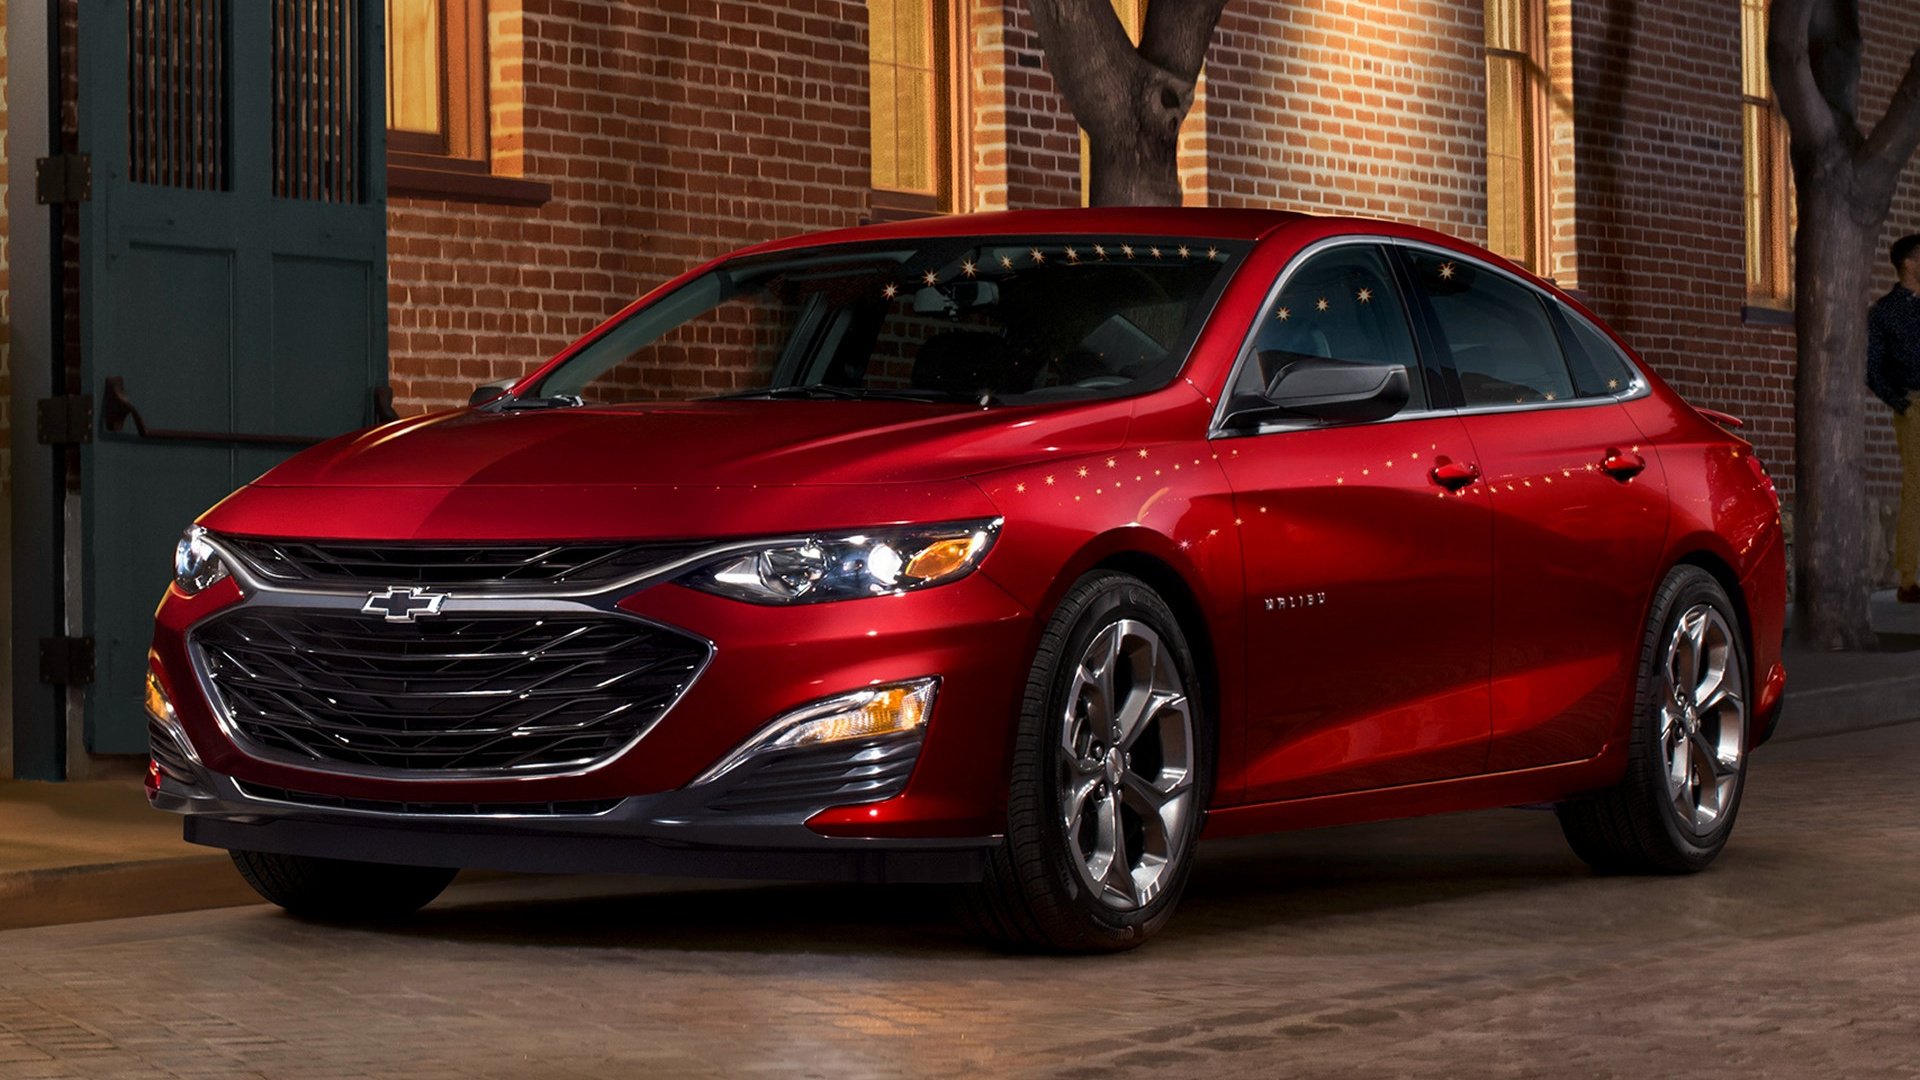 2019 Chevrolet Malibu RS - Wallpapers and HD Images | Car ...